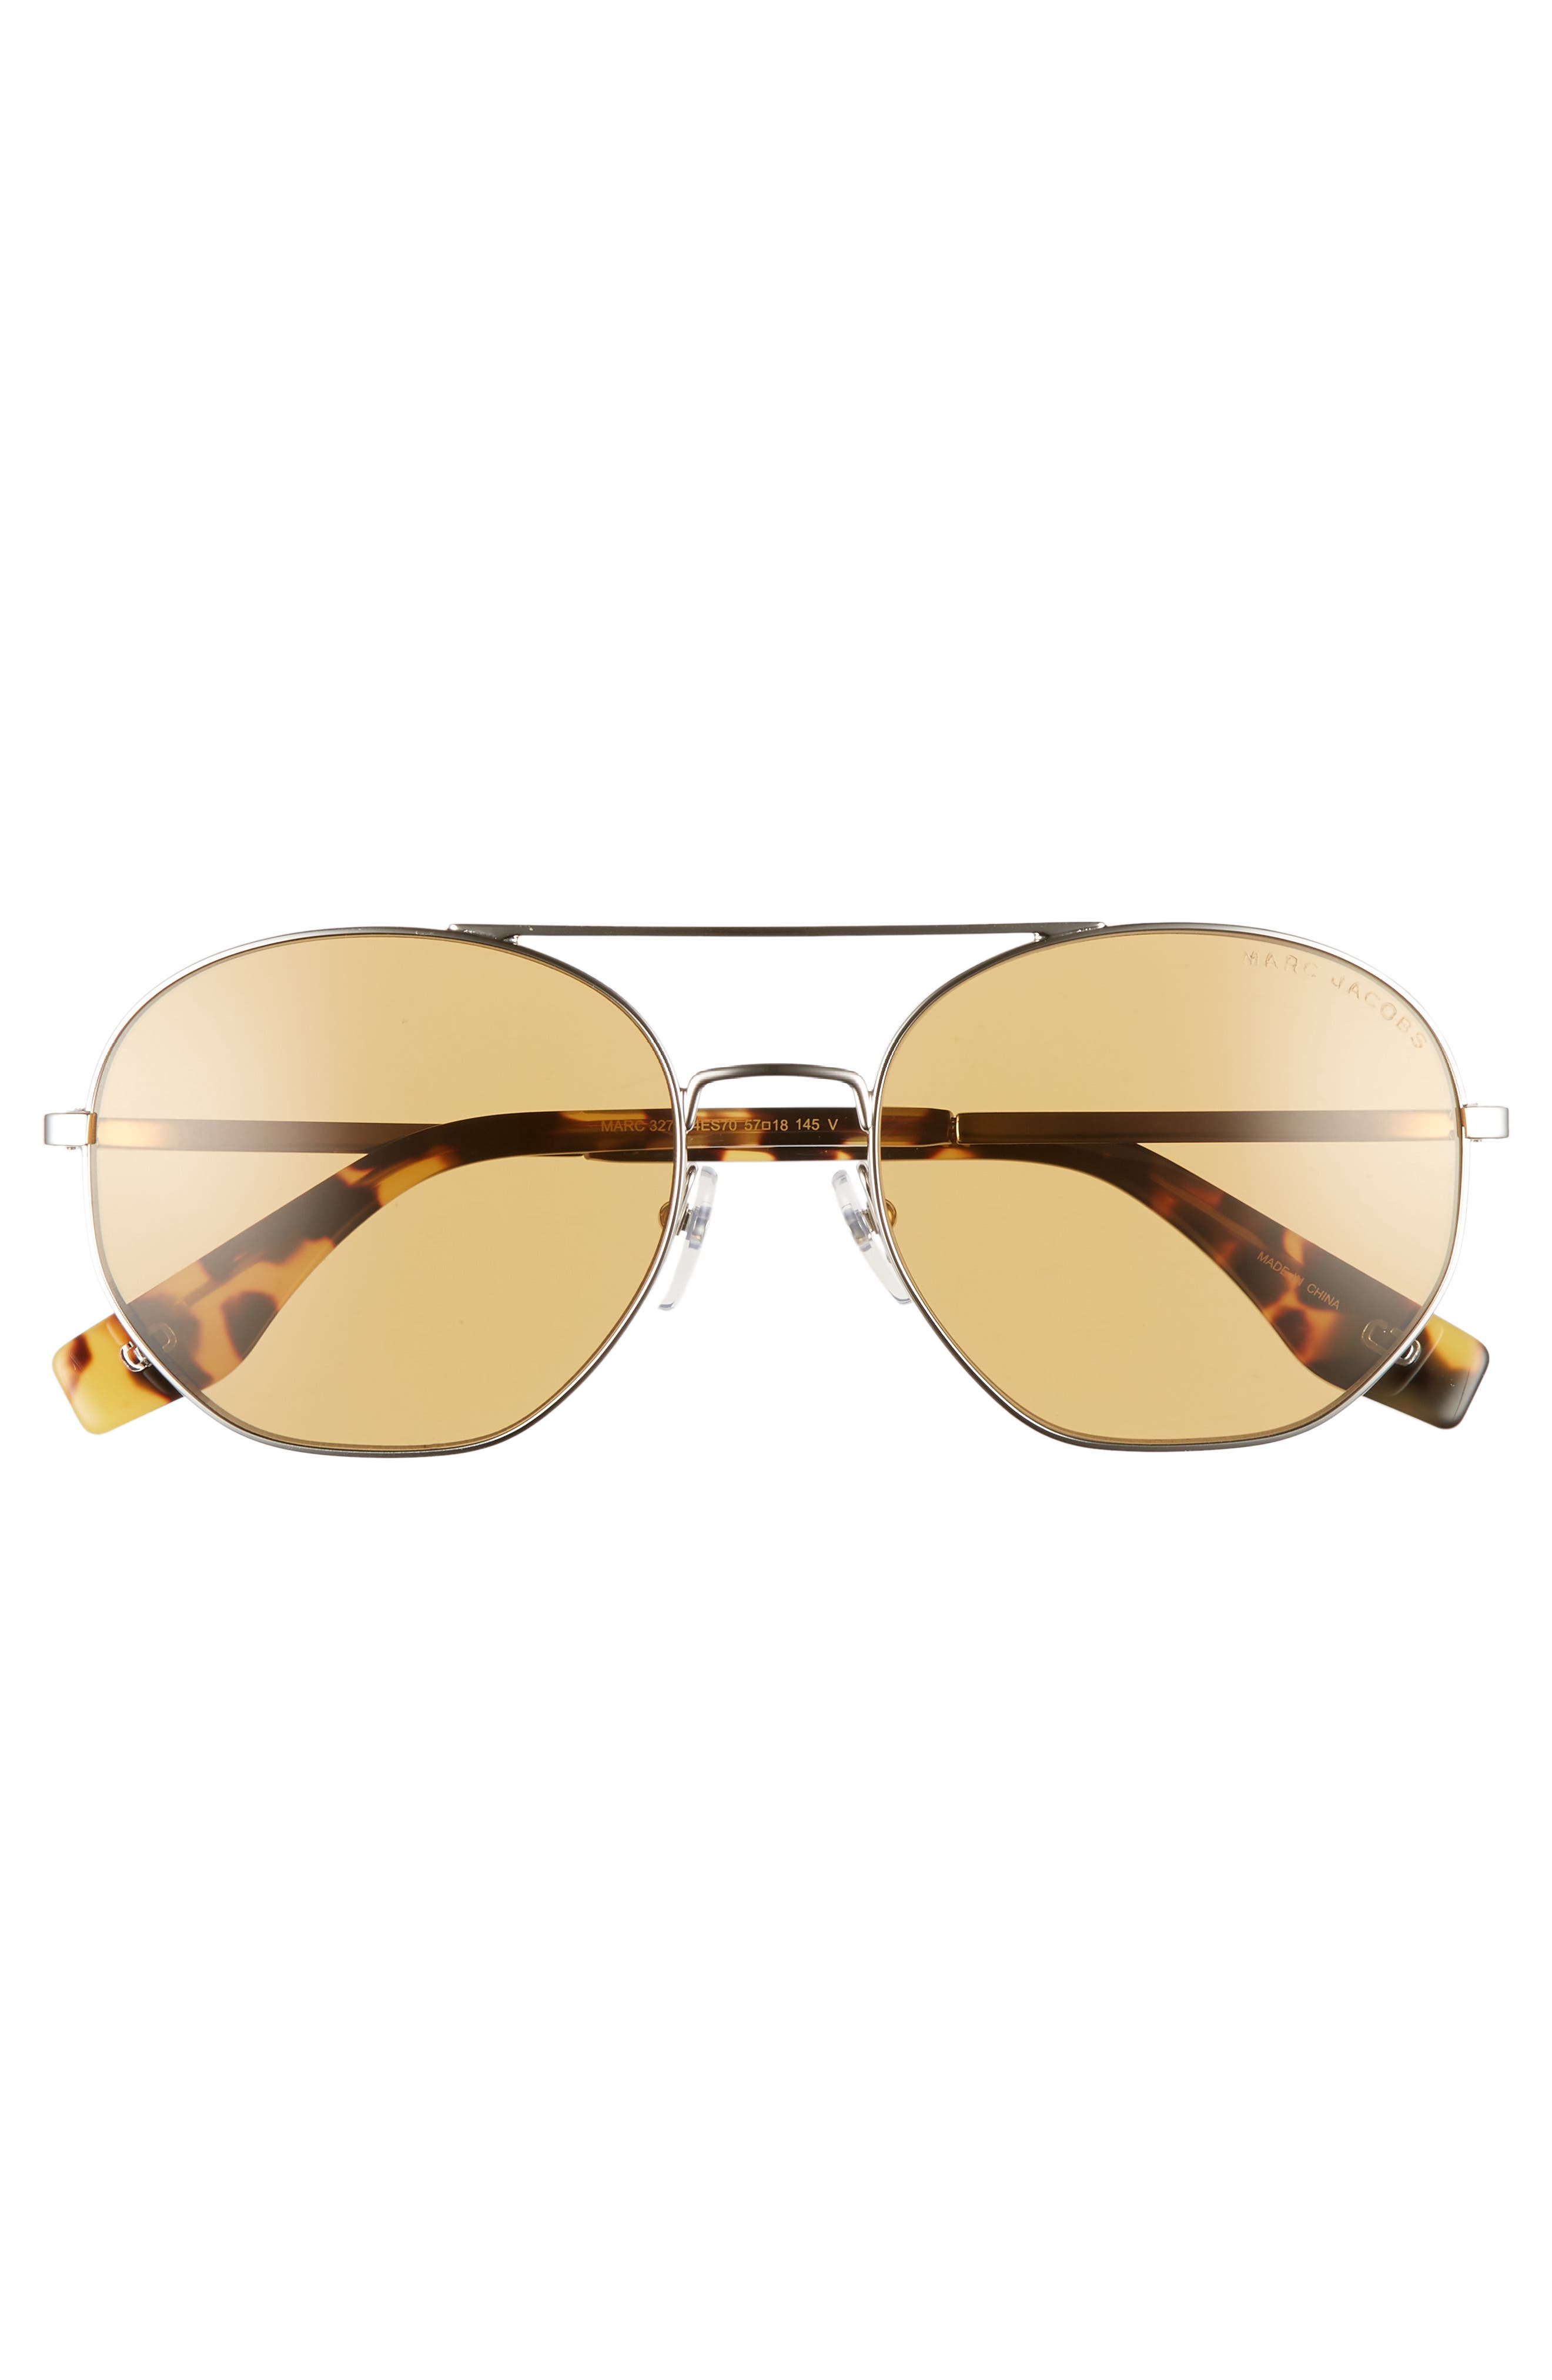 57mm Round Aviator Sunglasses,                             Alternate thumbnail 3, color,                             SILVER/ BROWN